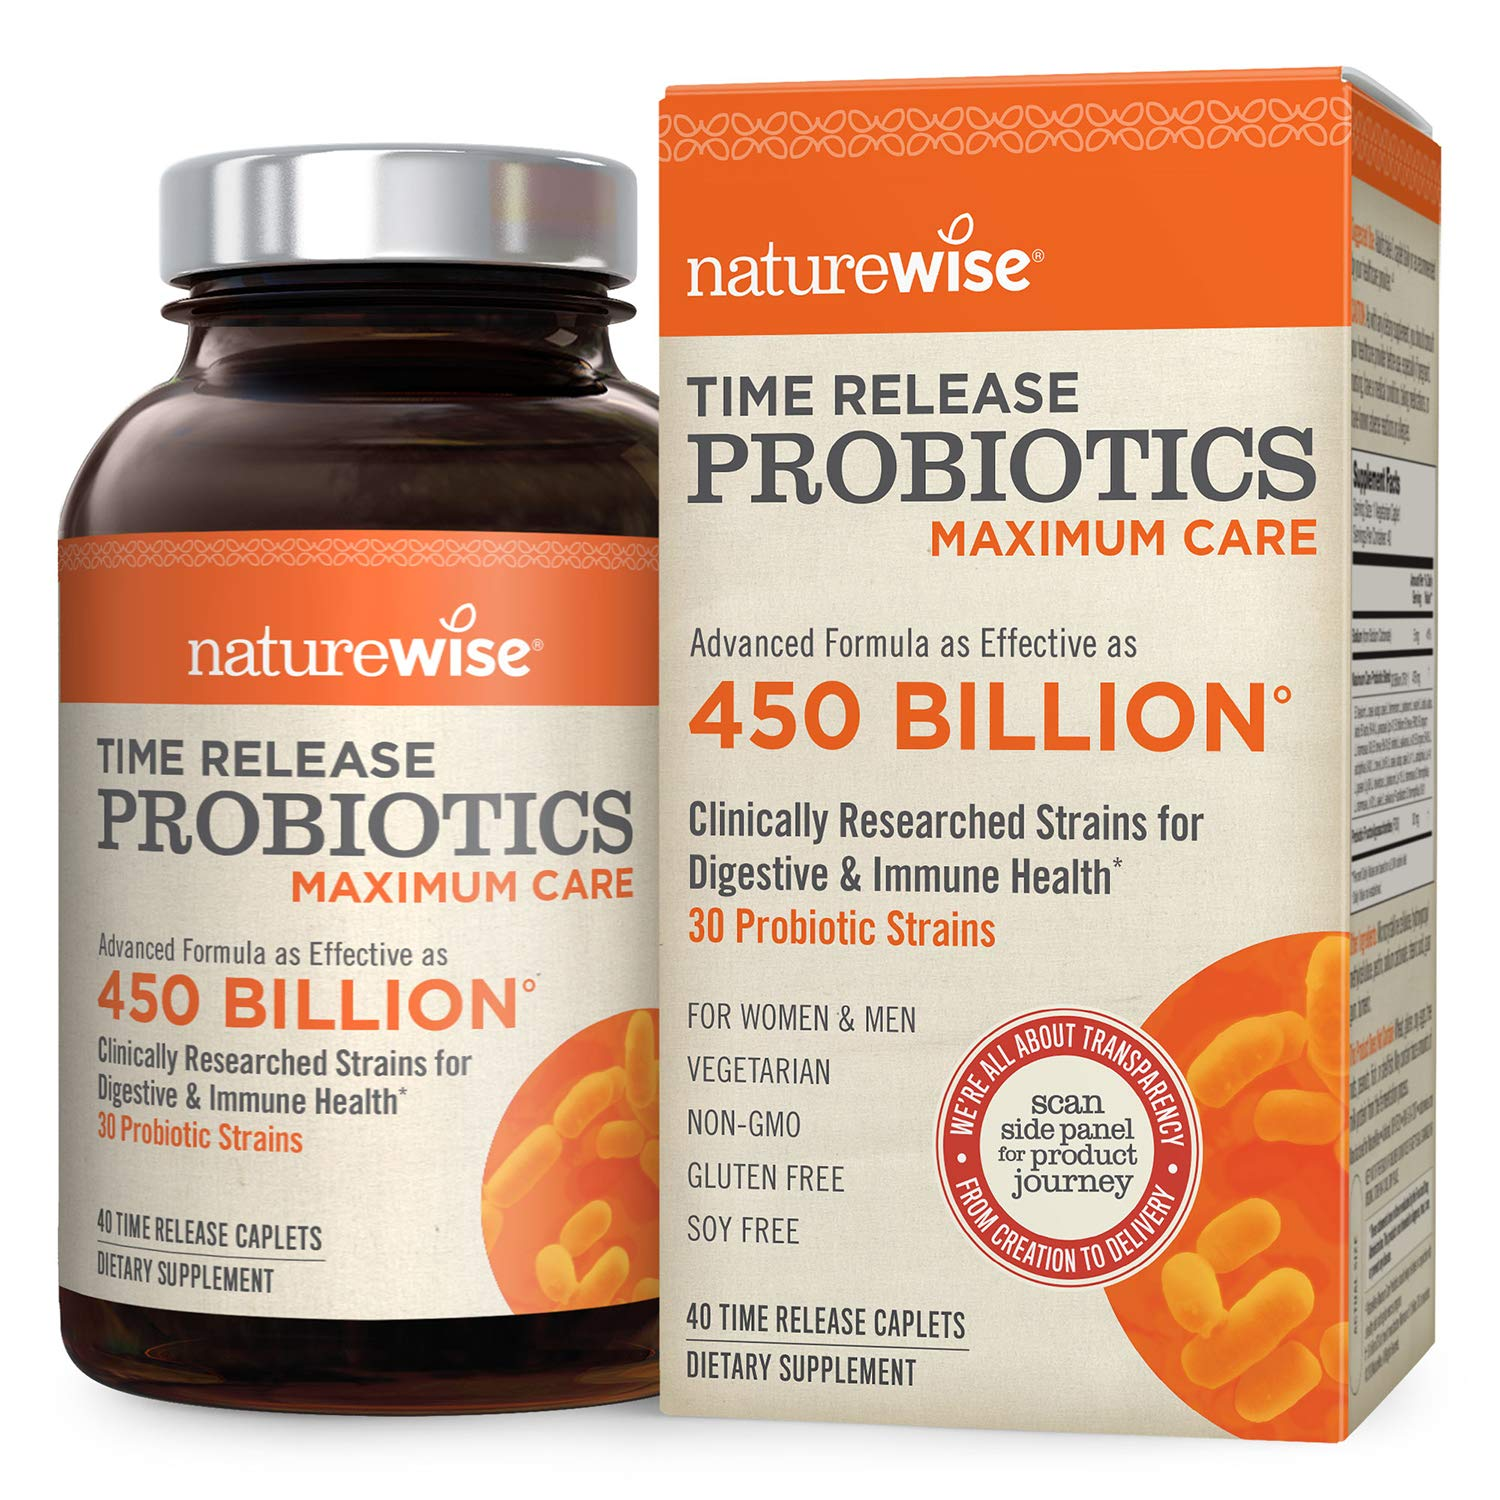 Discussion on this topic: More Proof That Probiotics Boost Immunity, more-proof-that-probiotics-boost-immunity/